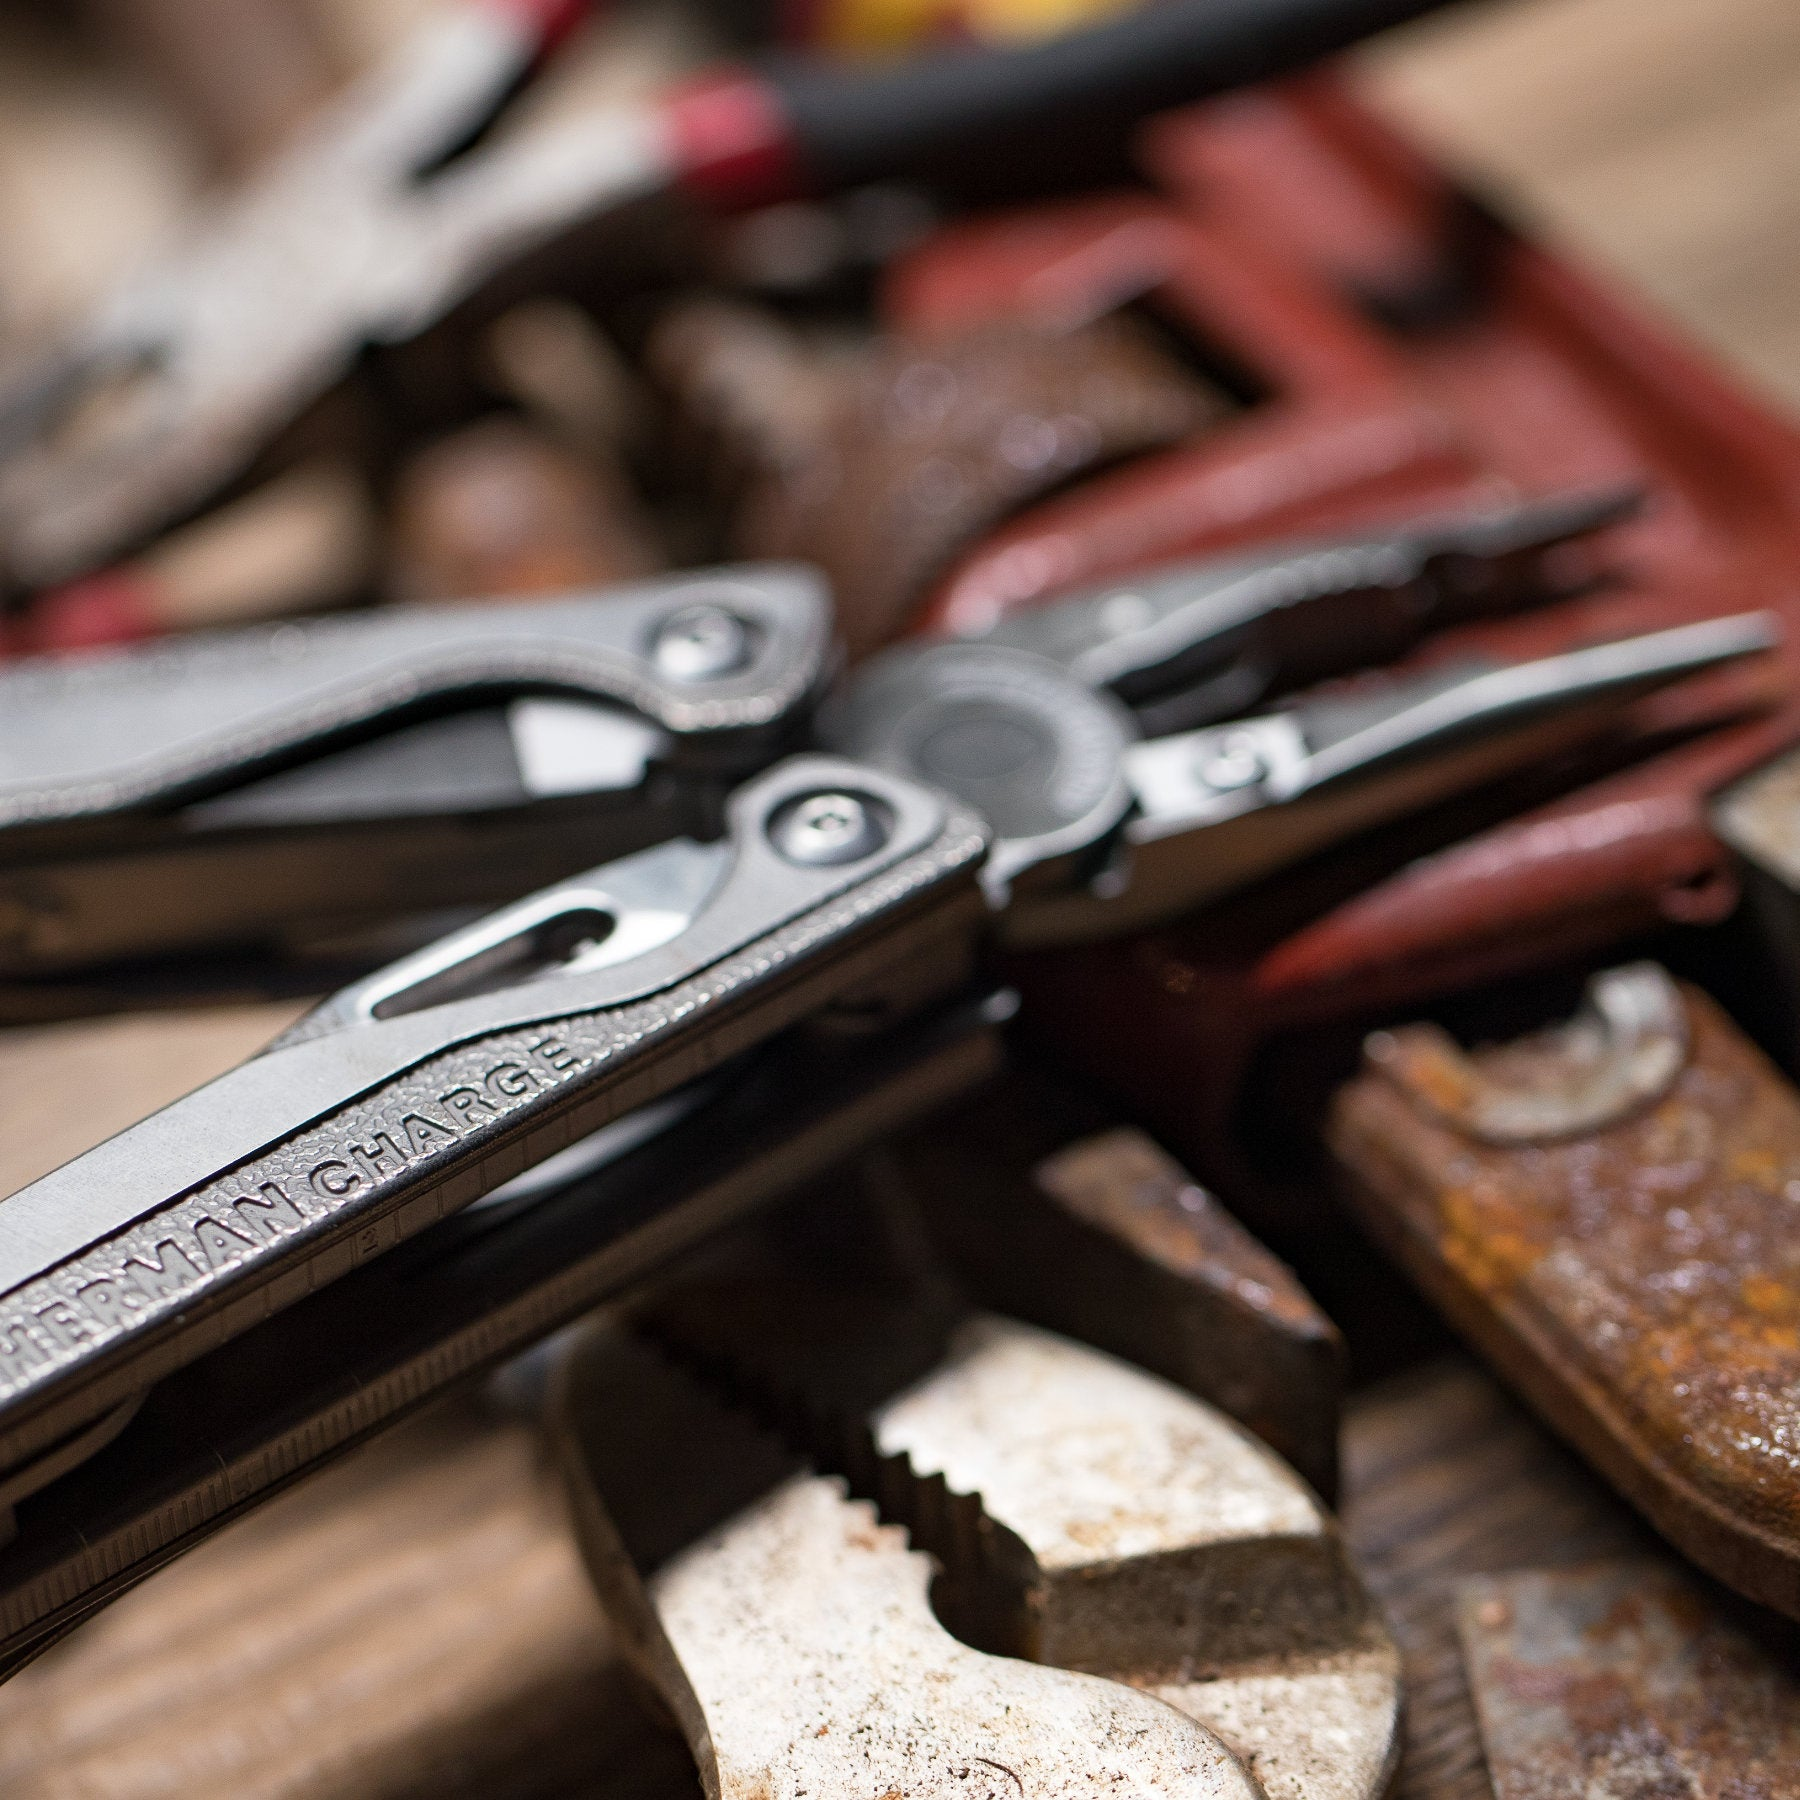 Leatherman Heavy Duty Tools at Swiss Knife Shop